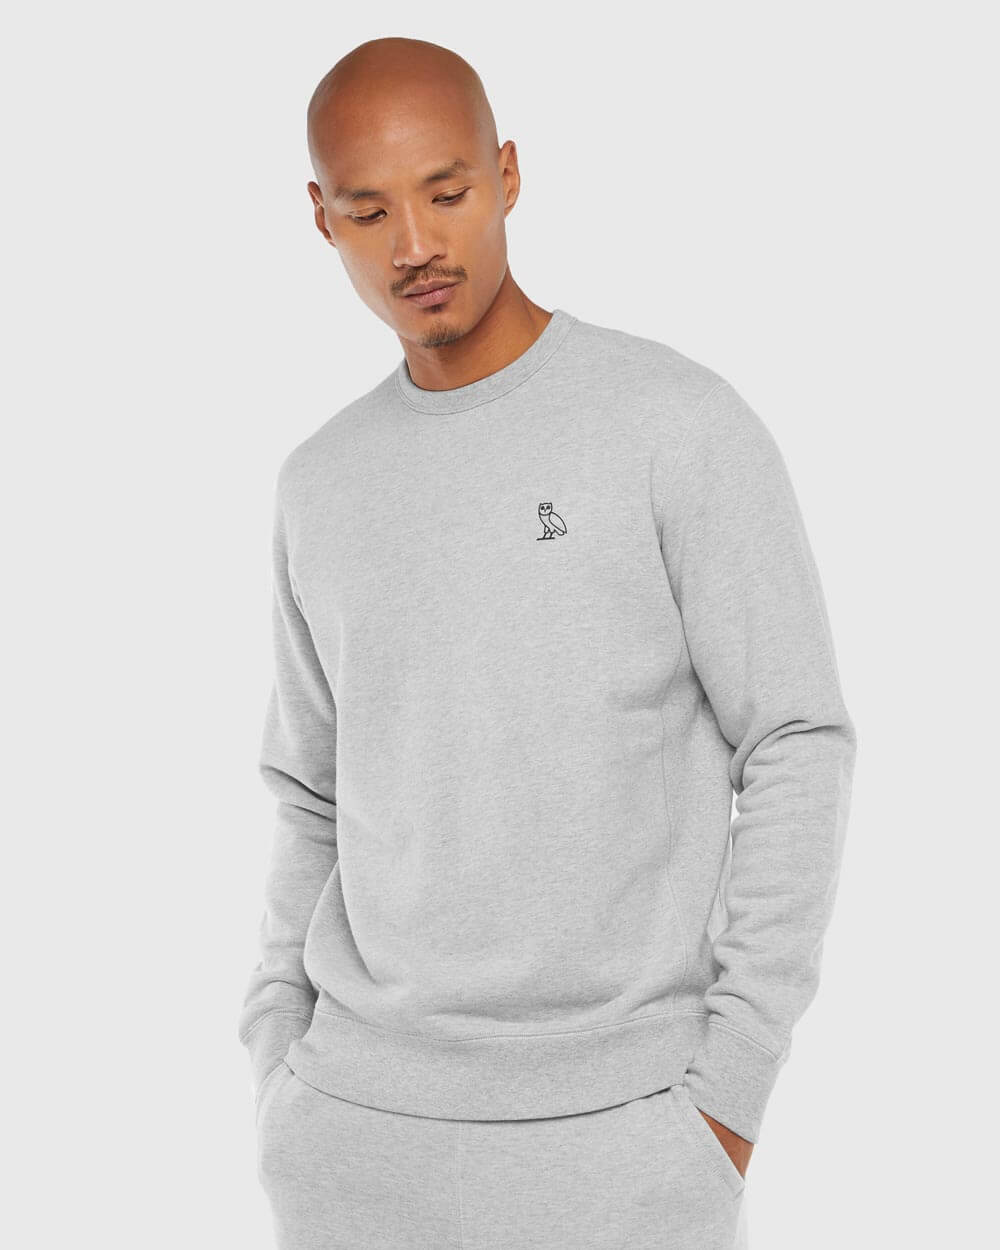 MID-WEIGHT FRENCH TERRY CREW - GREY